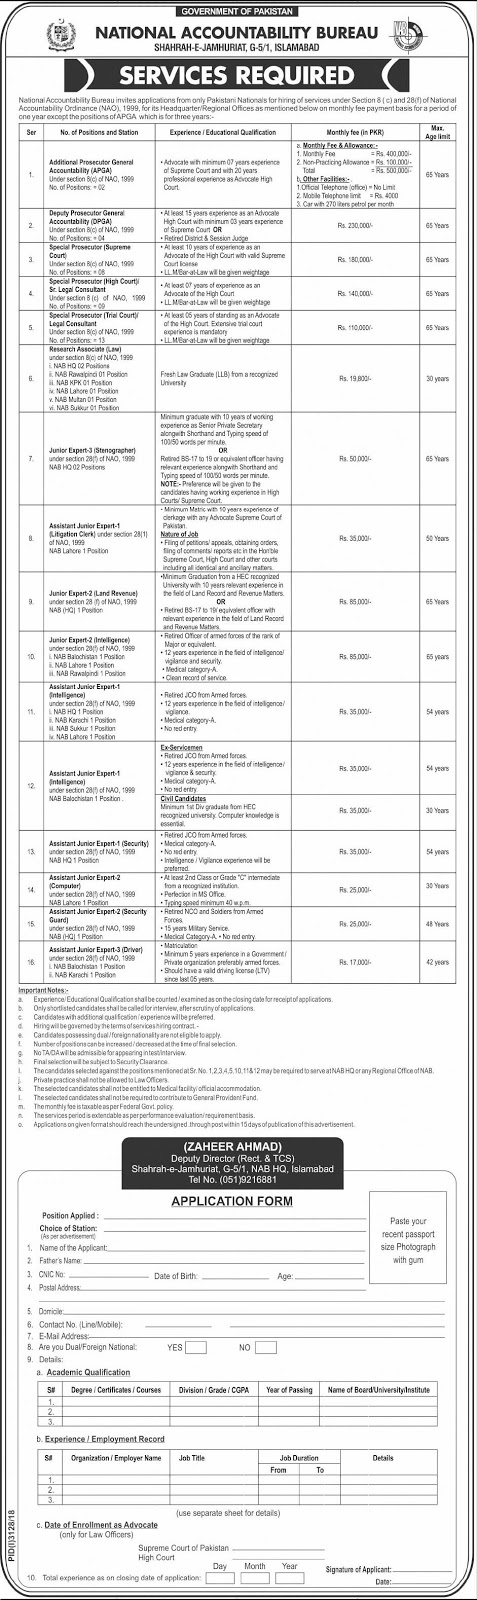 nab jobs 2019 newpakjobs